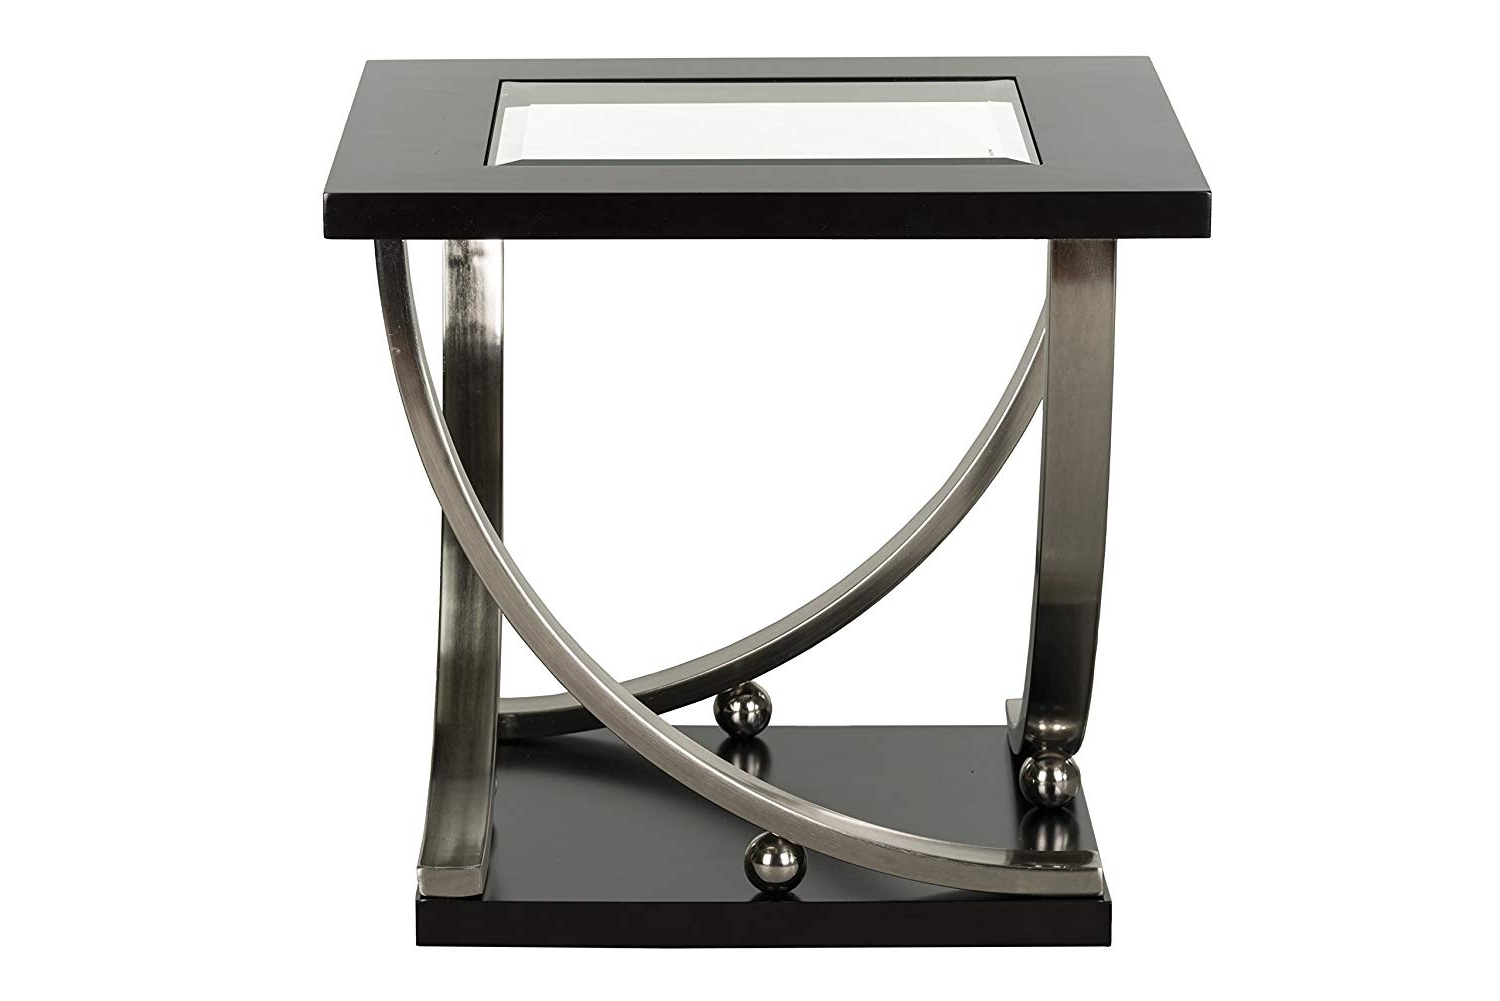 Latest Ina Matte Black 60 Inch Counter Tables With Frosted Glass In Amazon: Standard Furniture Melrose End Table With Casters, Brown (View 15 of 25)